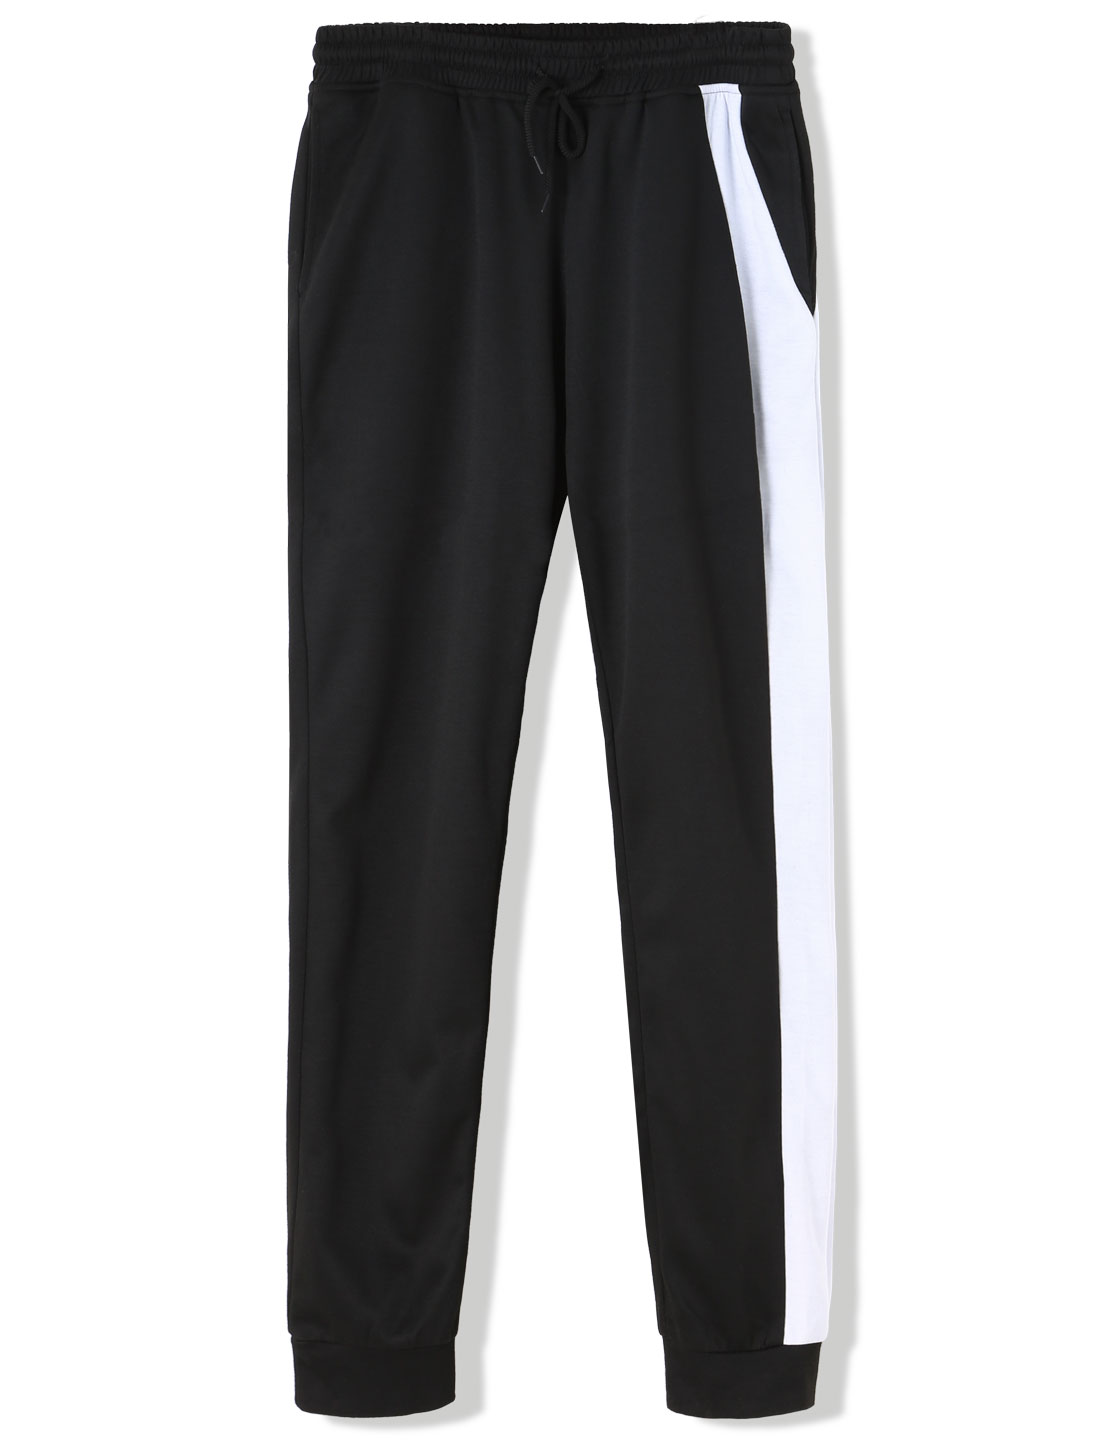 Men Color Block Stretch Elastic Waist Cuffed Sweatpants Black W36